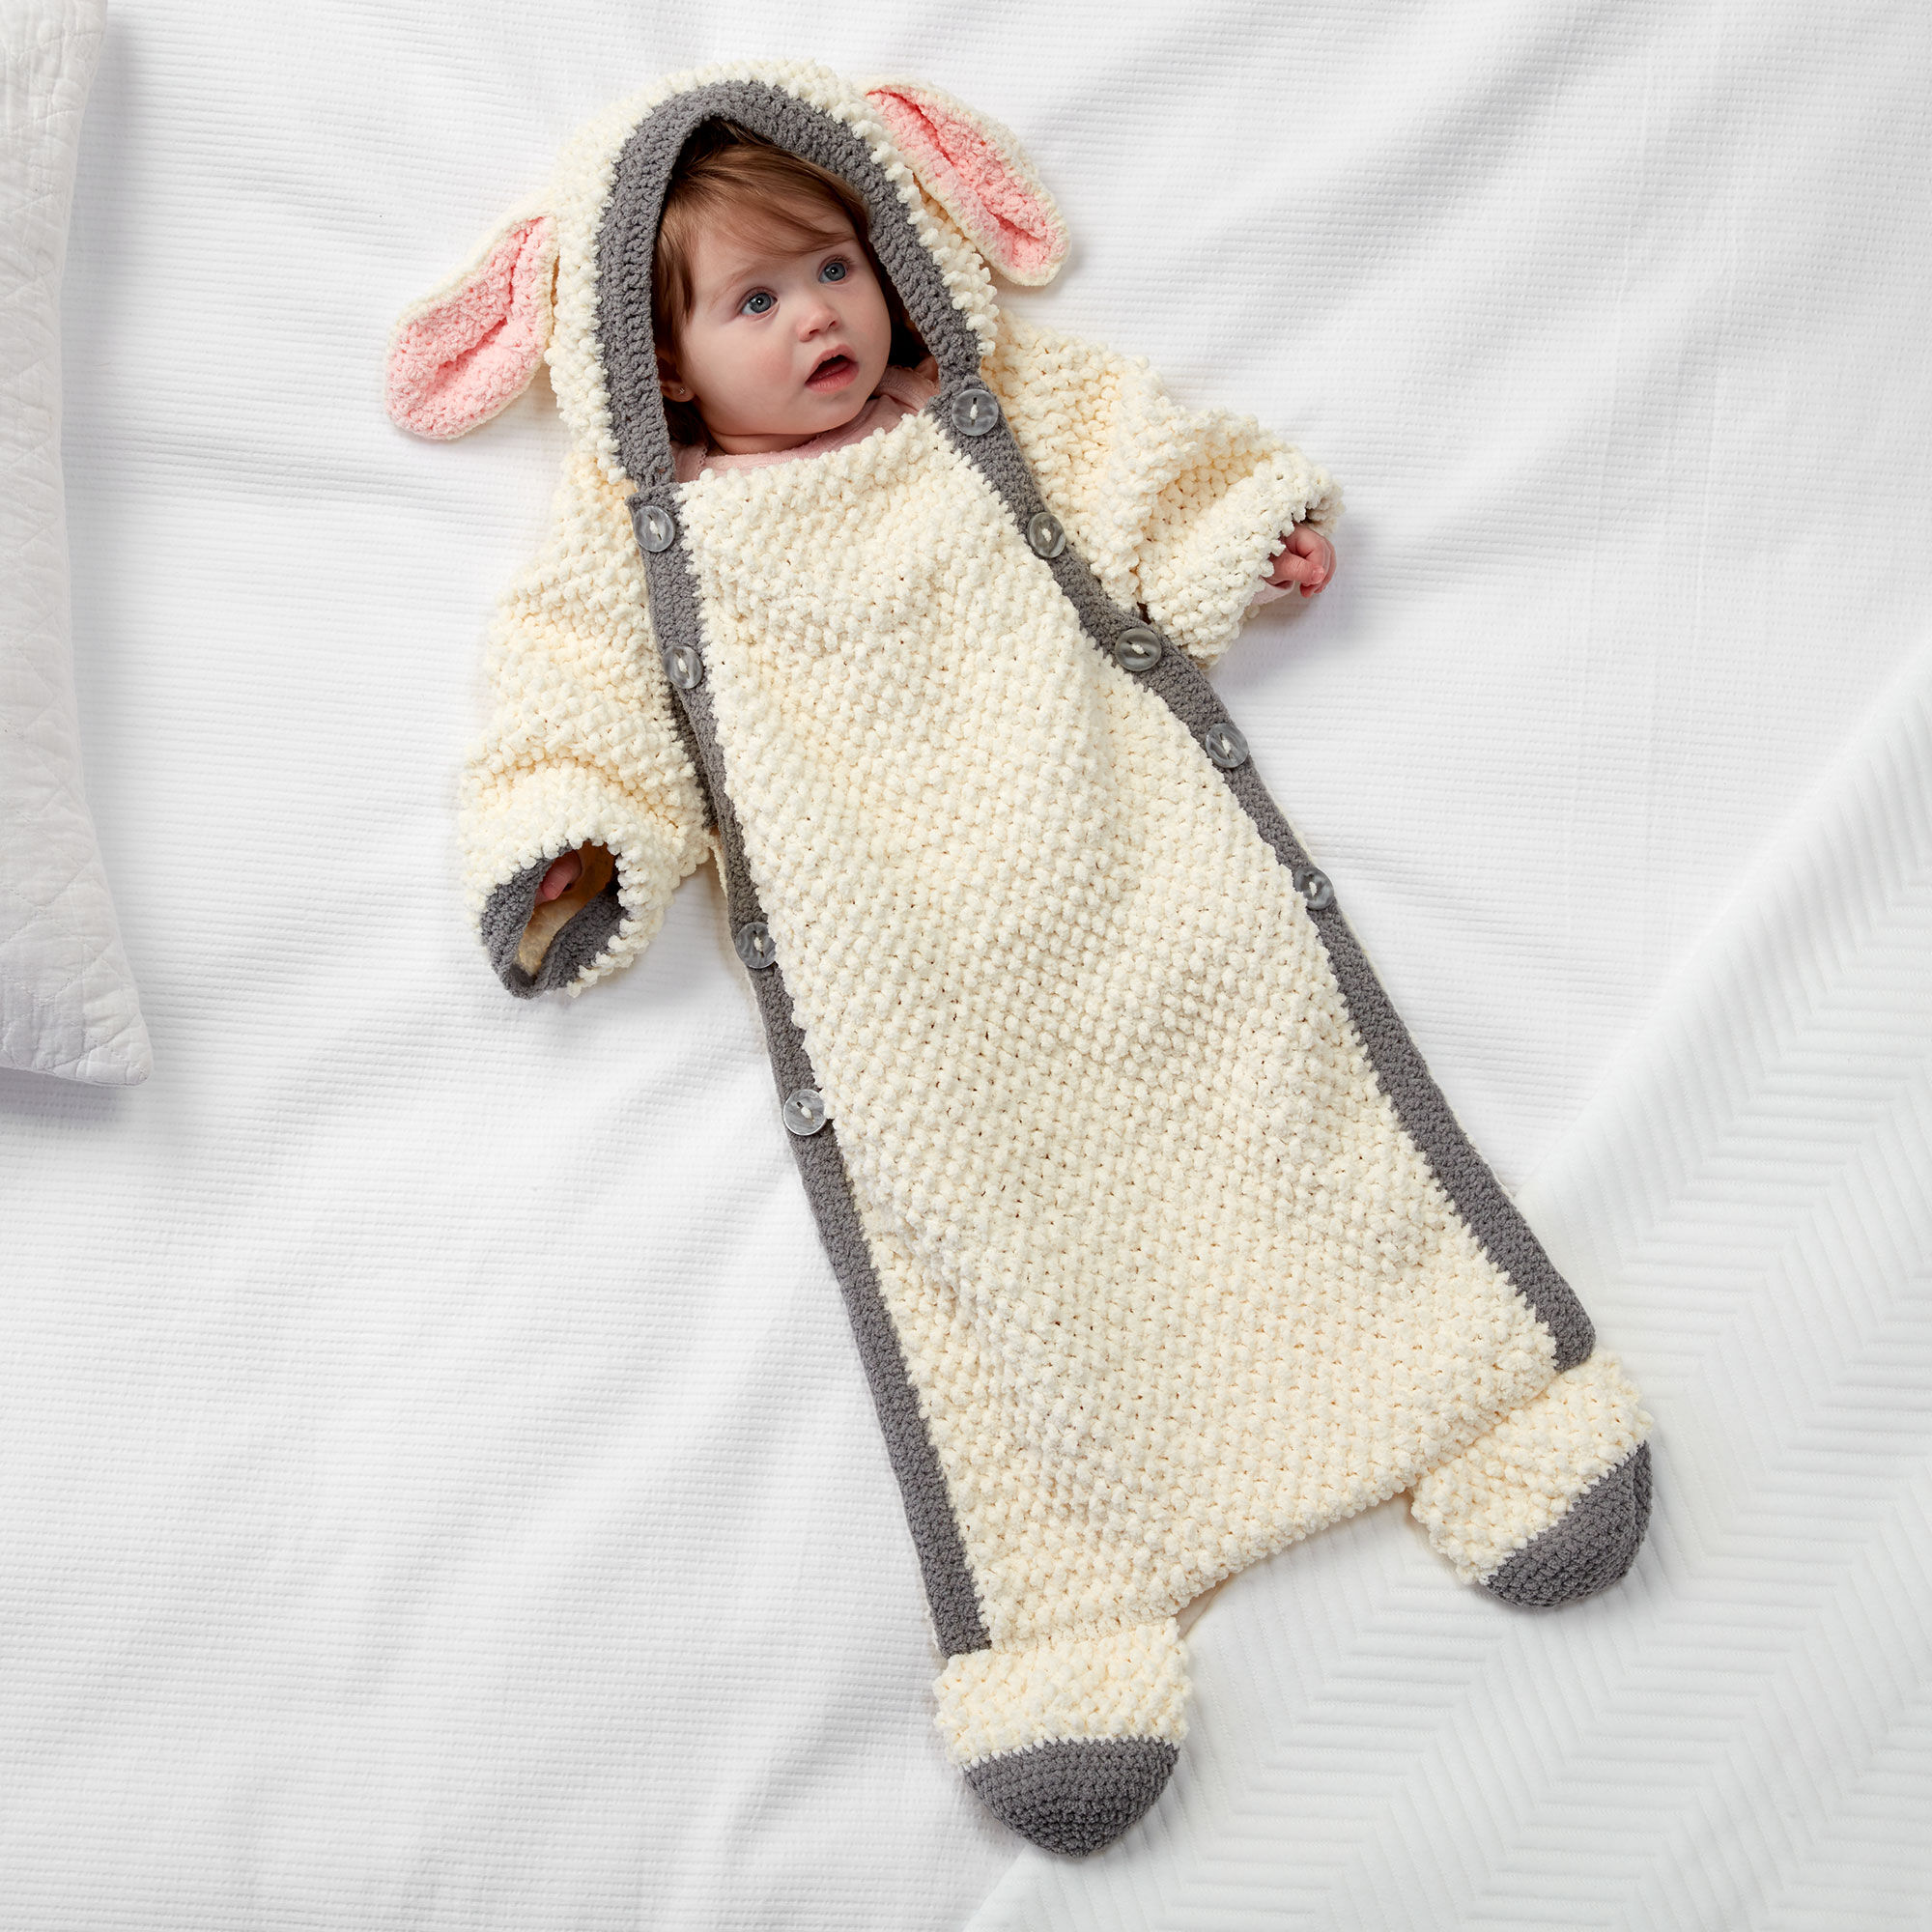 Easy Yawn the Sheep Crochet Snuggle Sack